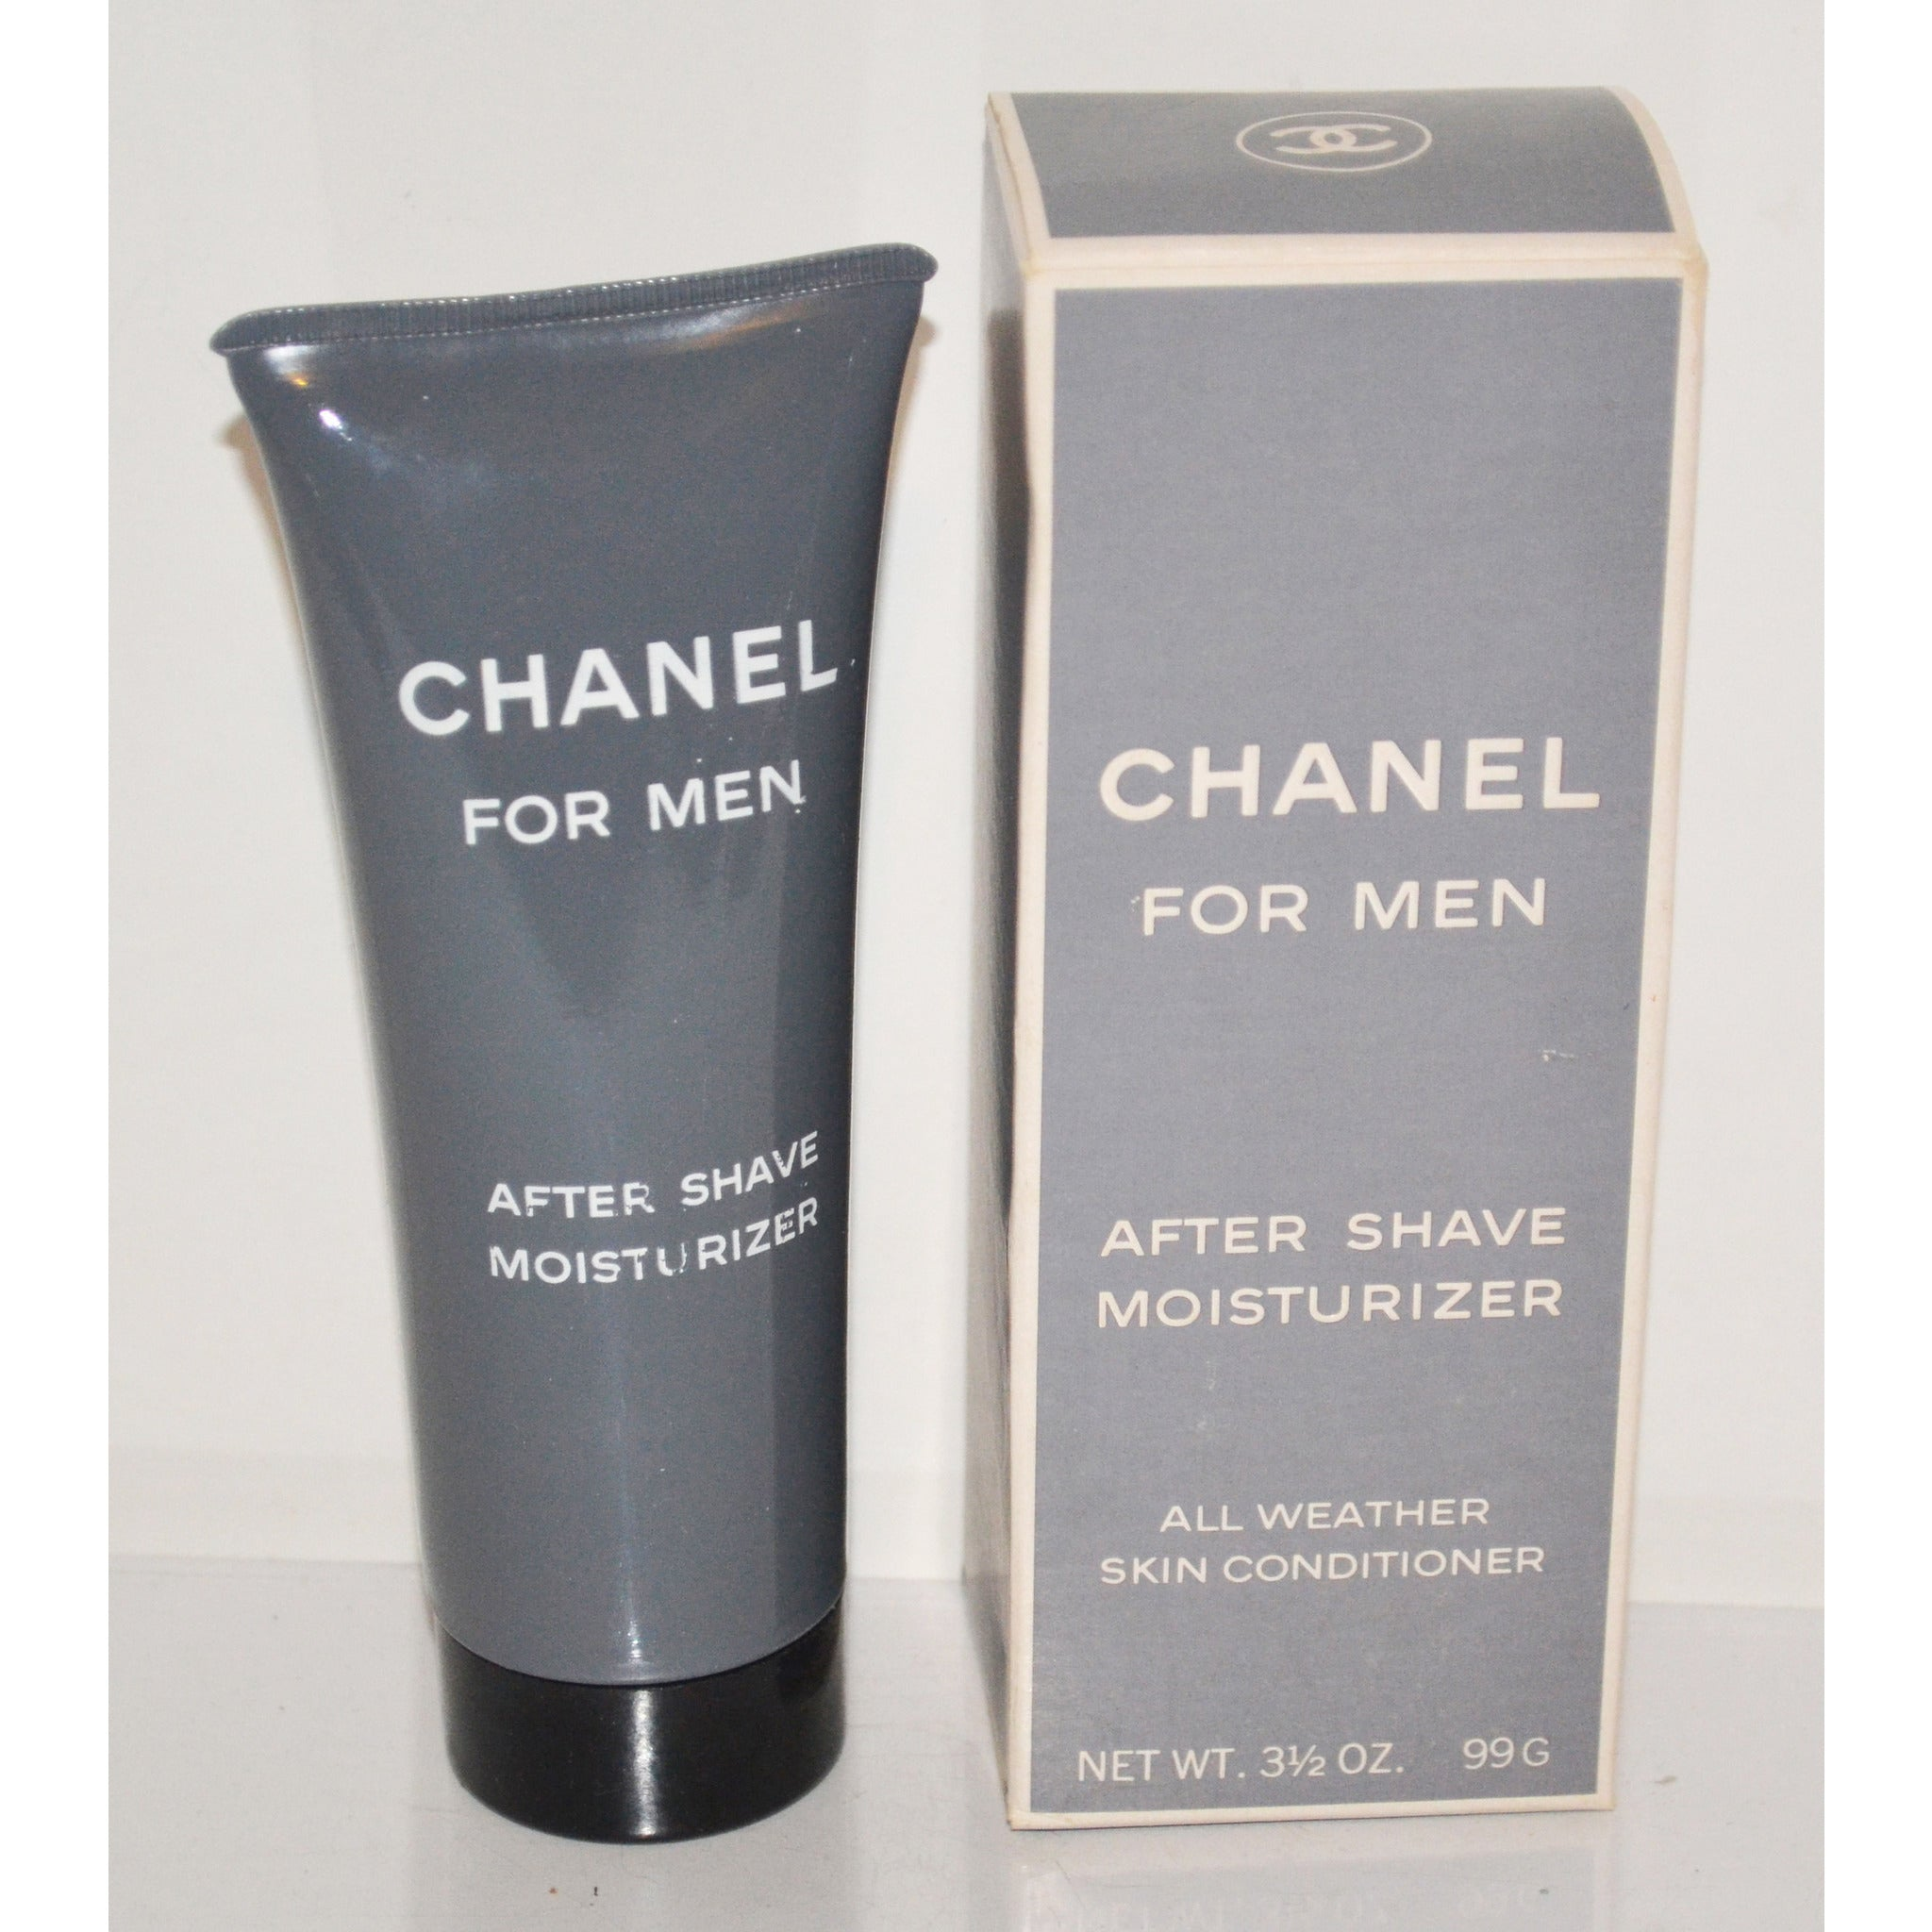 Vintage Chanel For Men After Shave Moisturizer